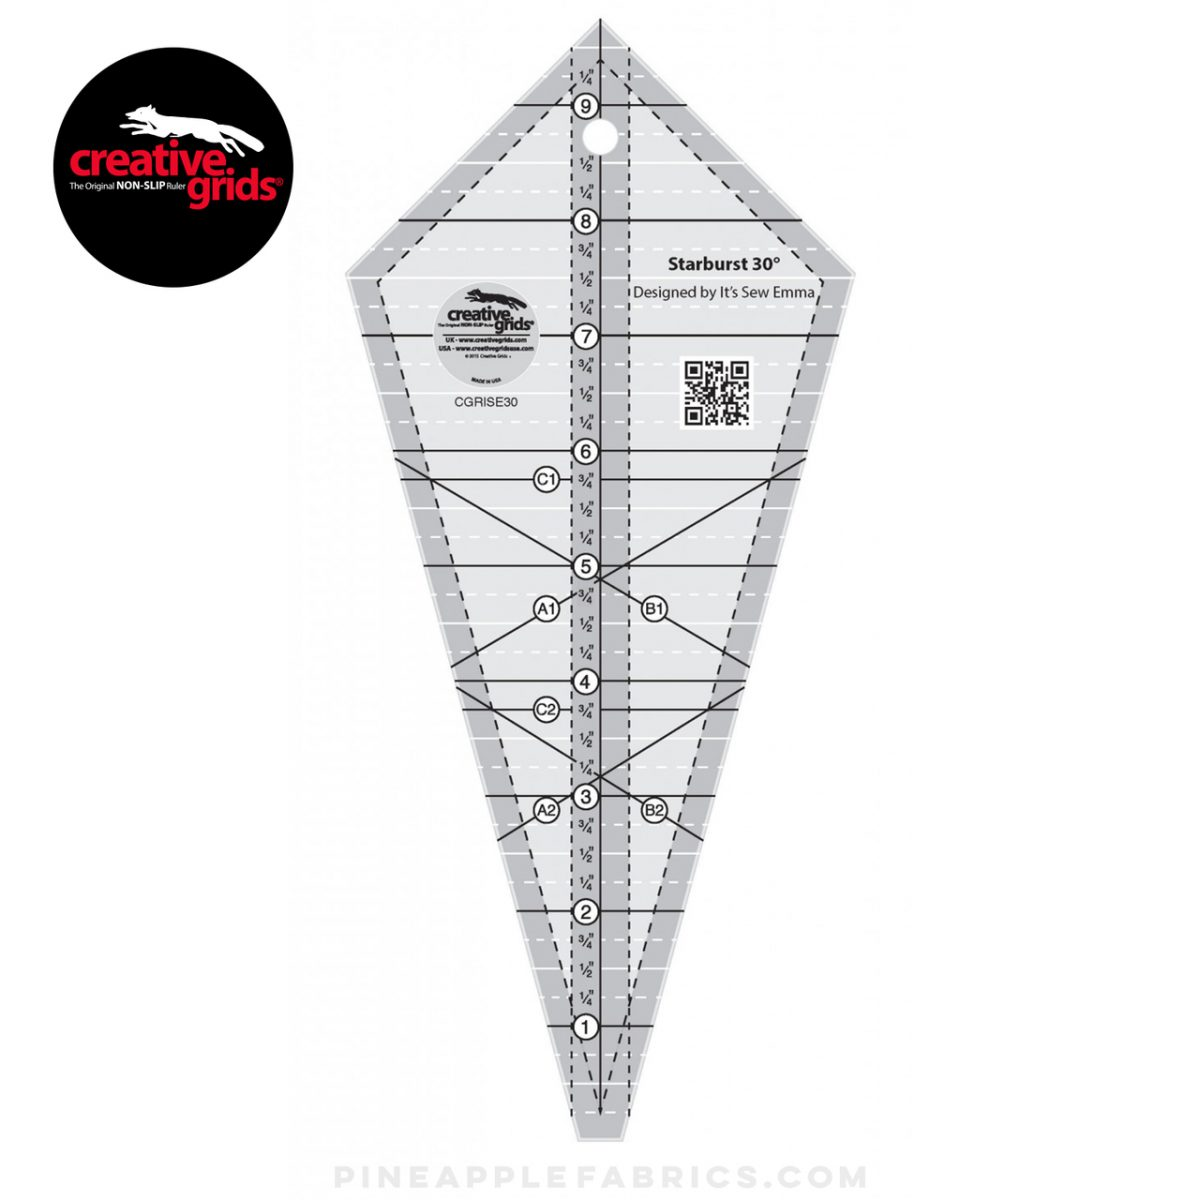 CGRISE30 - Creative Grids Starburst 30 Degree Triangle Ruler